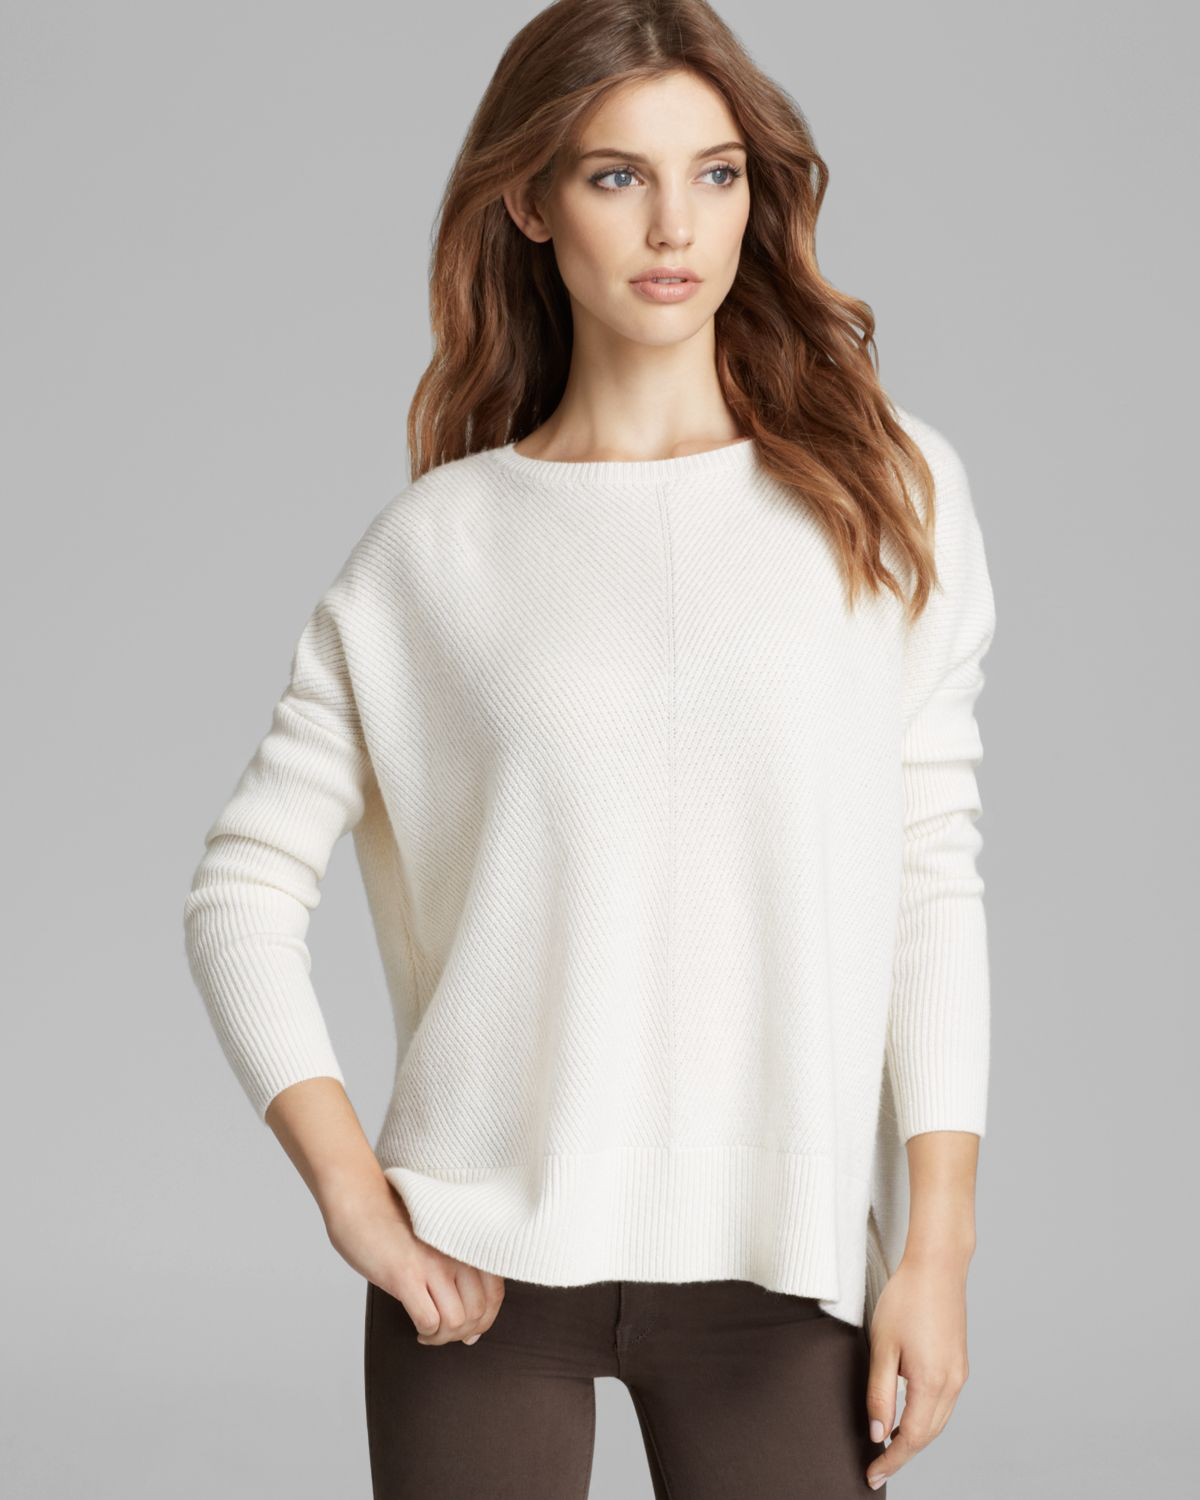 Winter White Sweaters For Ladies